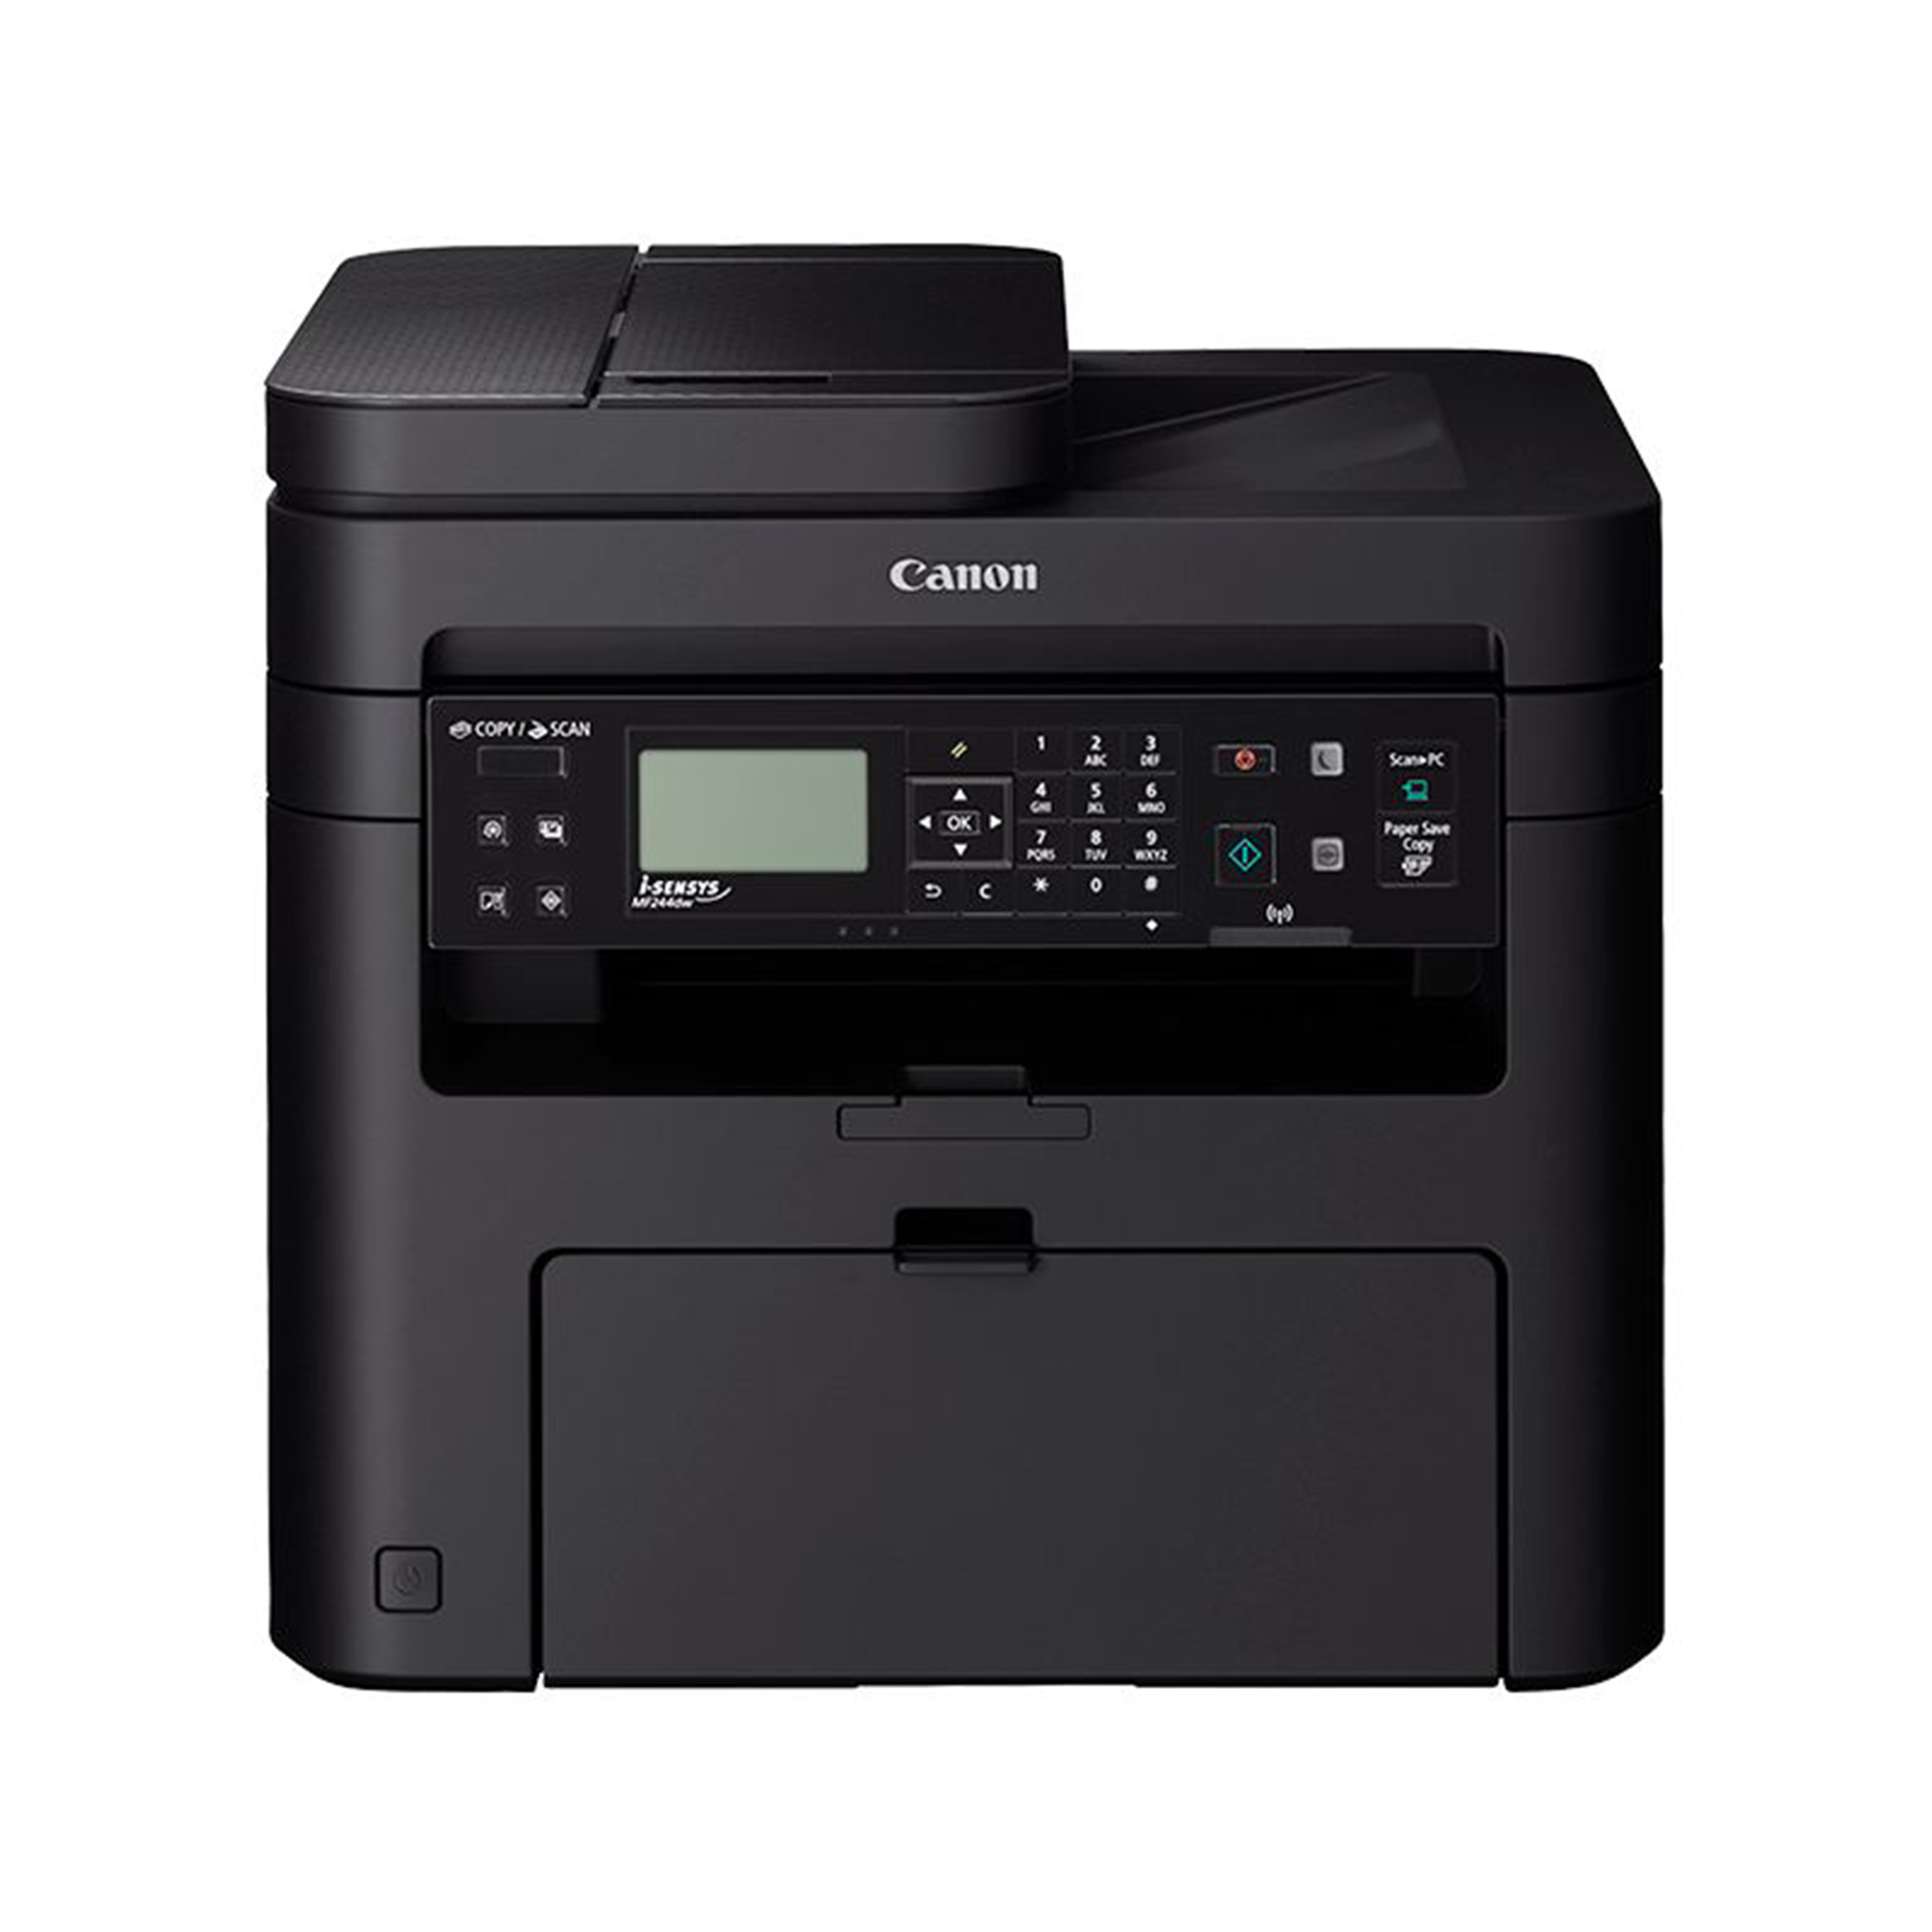 Canon i-SENSYS MF237w Laser Printer